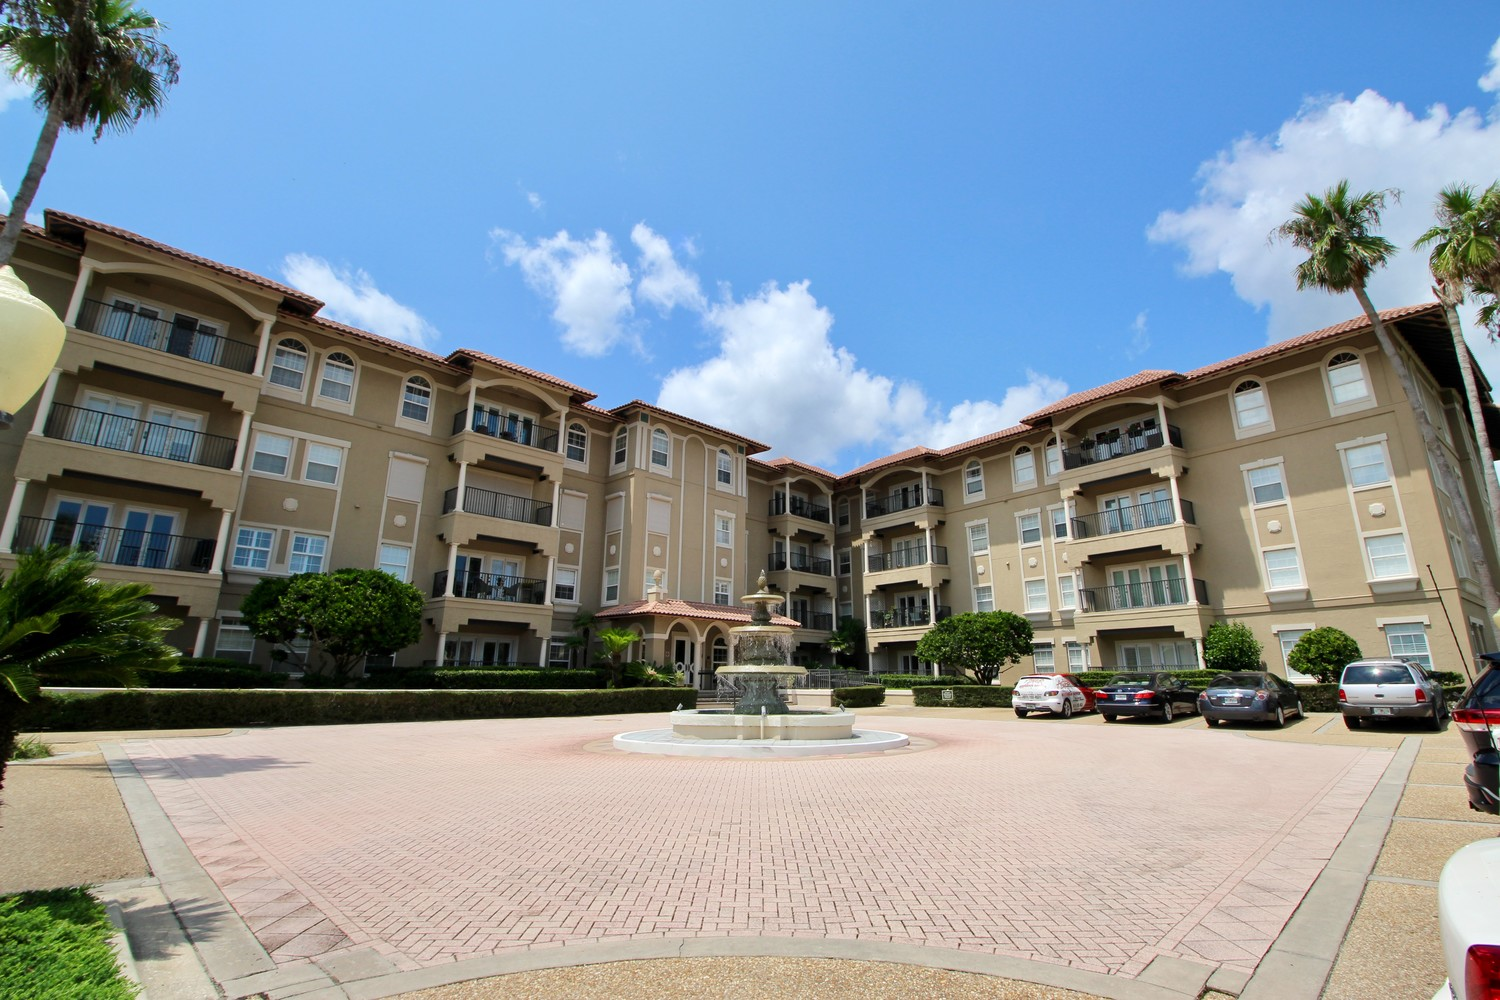 The Carlyle Condos are home to 47 units in the center of one of the most prestigious areas of Ponte Vedra Beach.